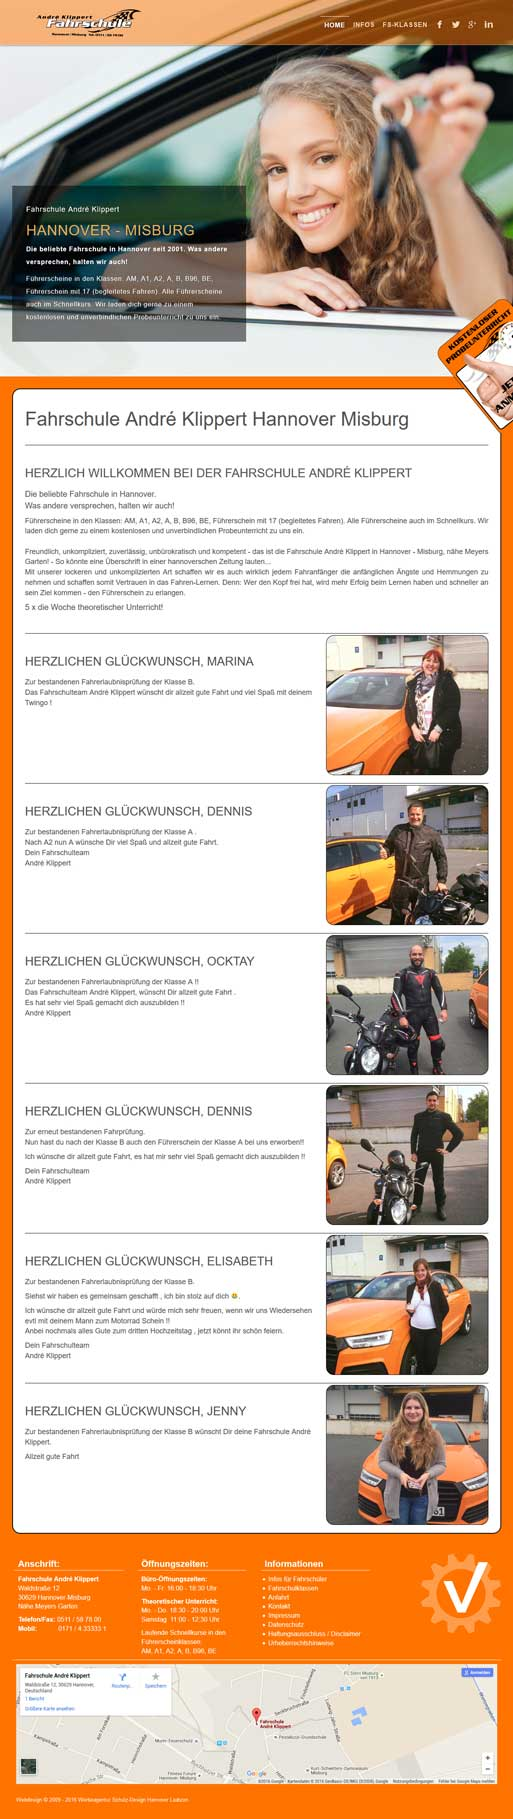 Webdesign Hannover - Fahrschule André Klippert Hannover Misburg mit neuer Webseite